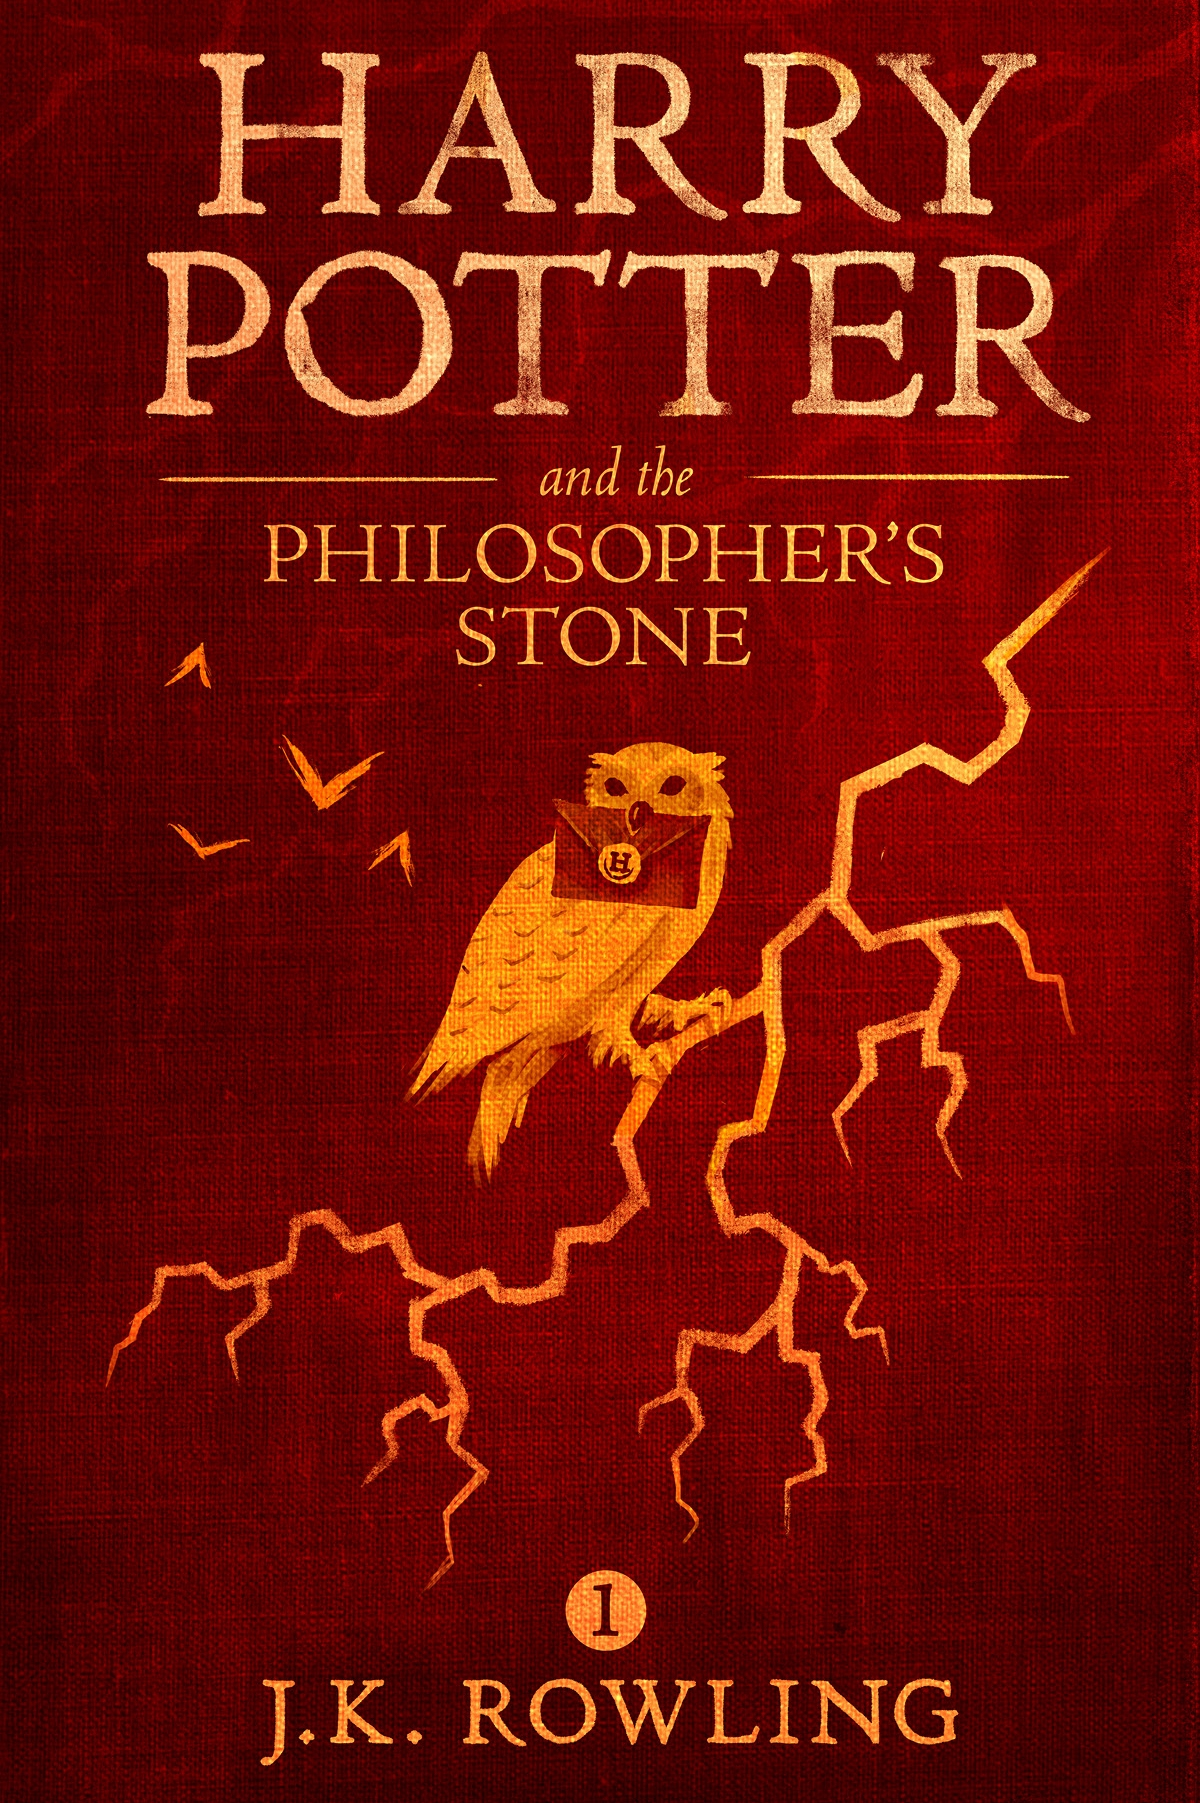 Джоан Кэтлин Роулинг «Harry Potter and the Philosopher's Stone»